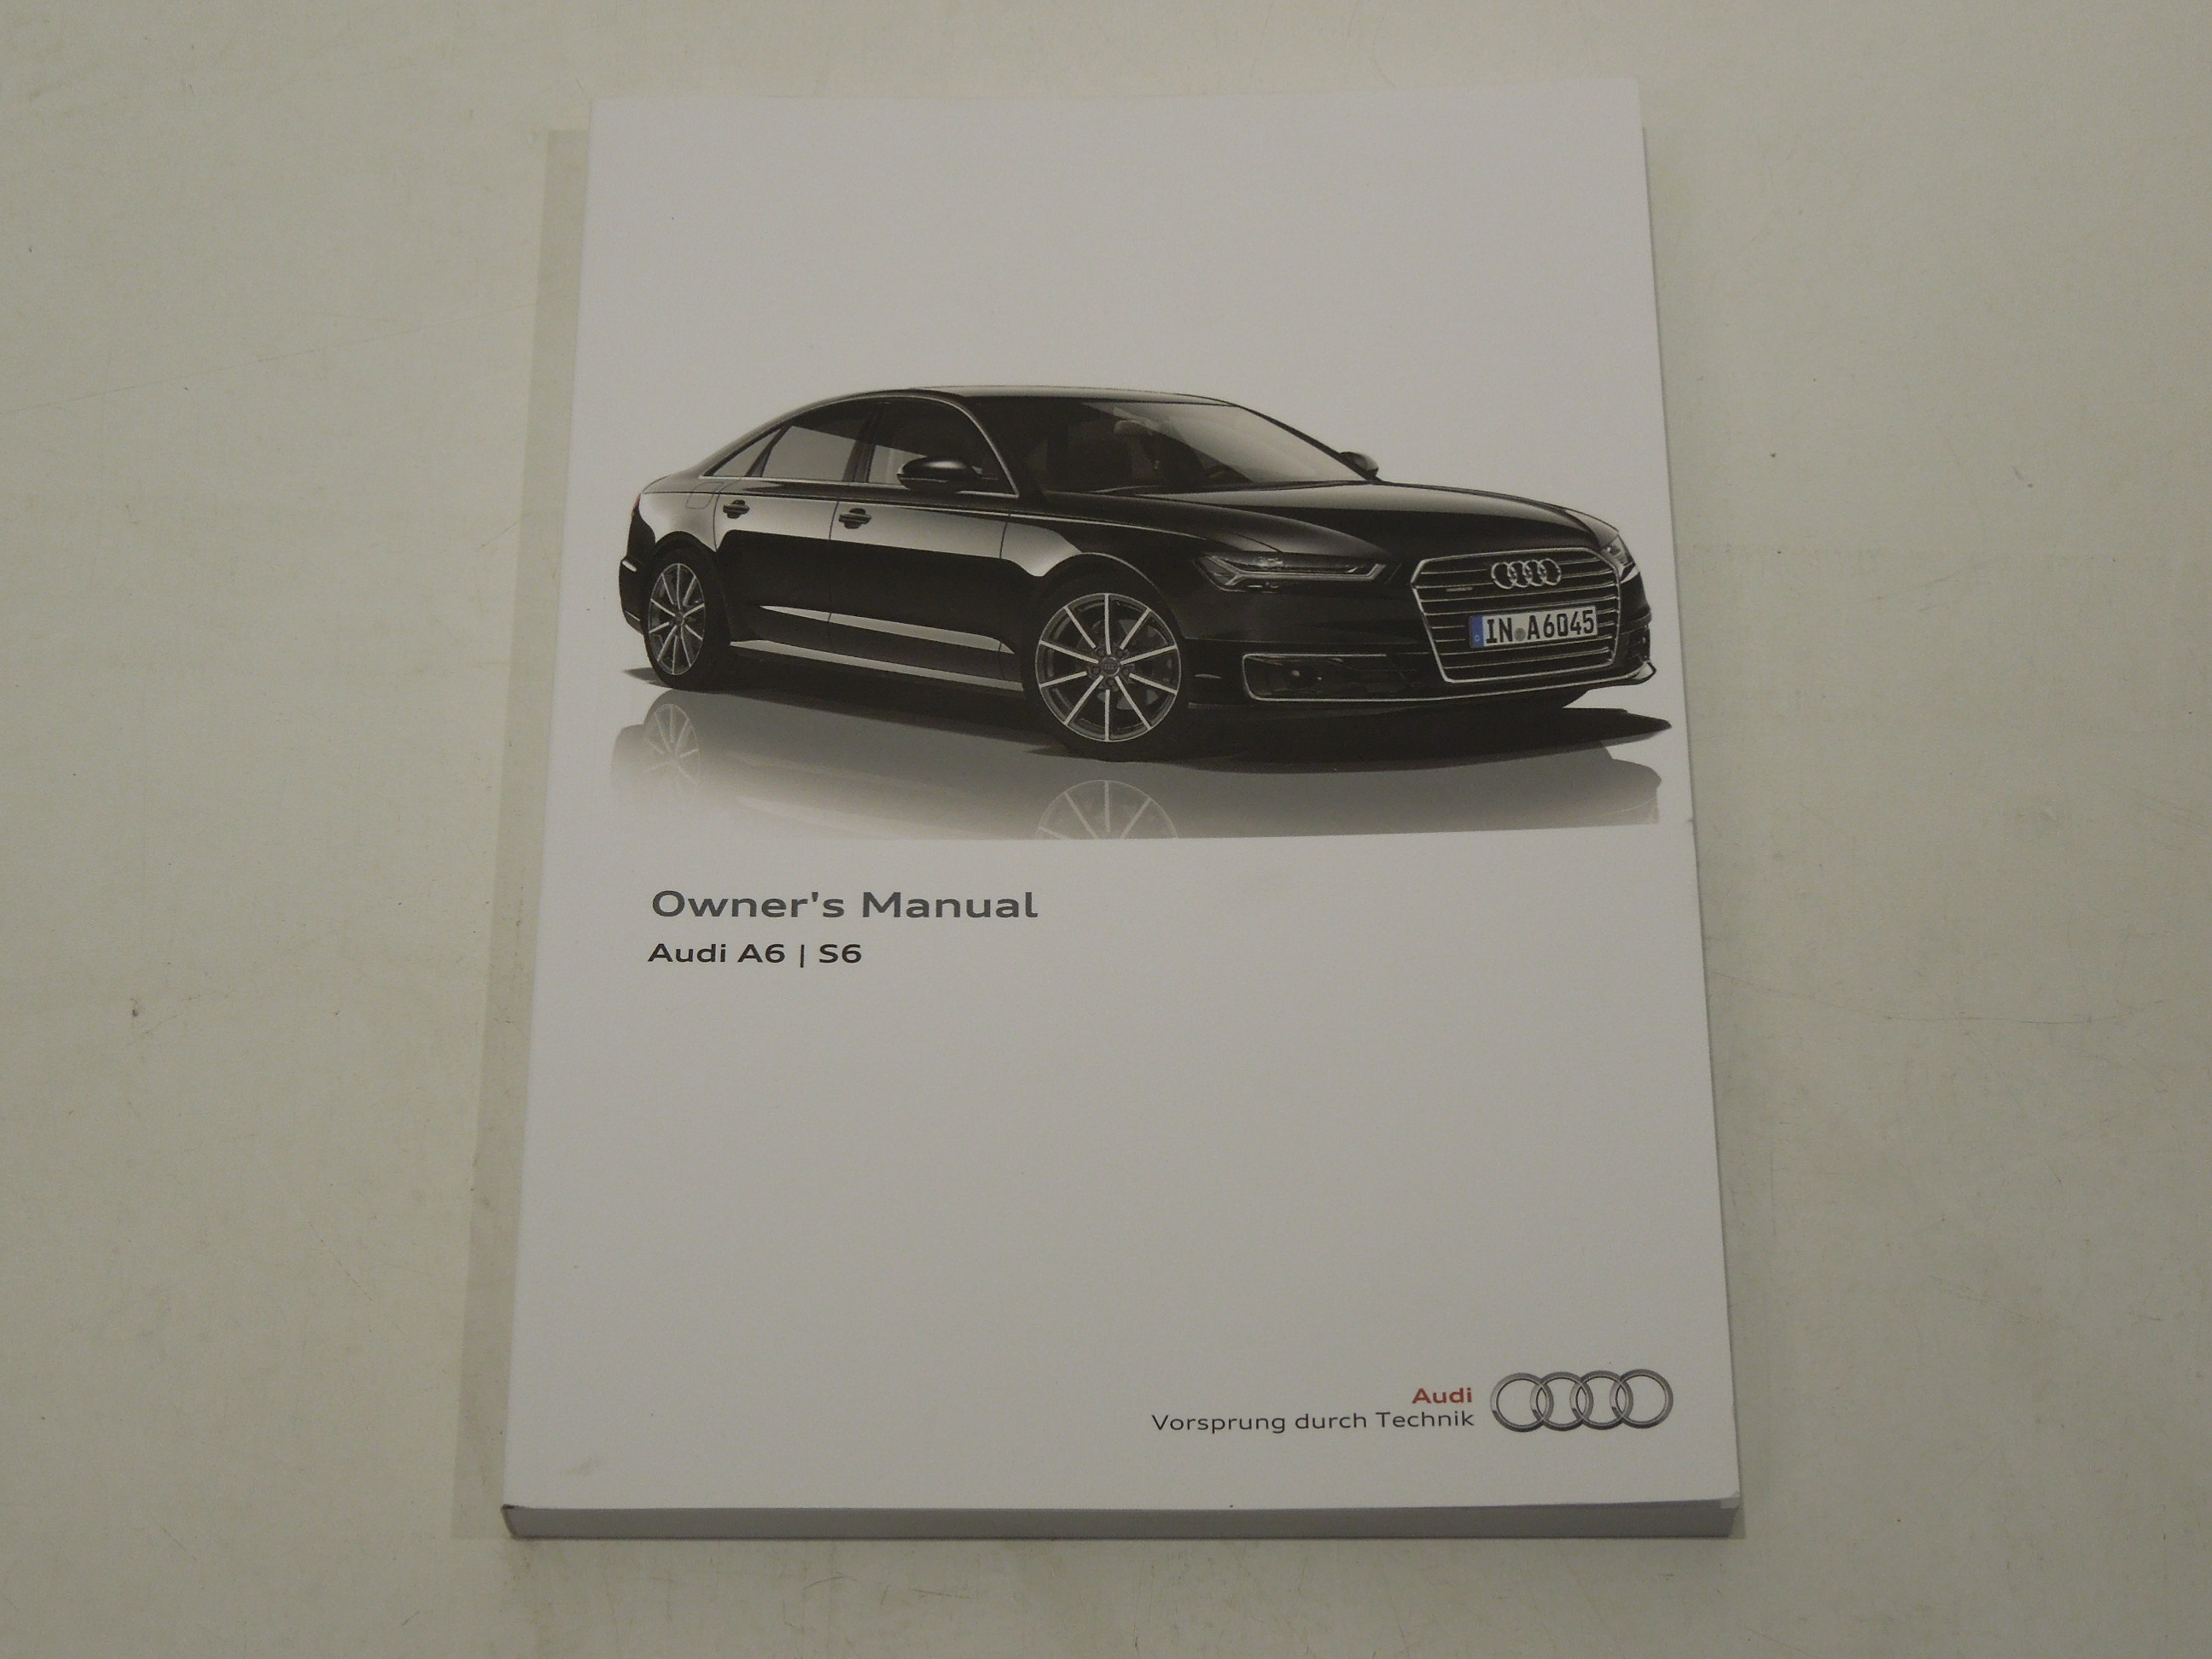 audi a6 c7 handbook owners manual 05 2015 u003e new 1615614g020 ebay rh ebay co uk 2002 audi a6 avant owner's manual 2002 audi a6 owners manual online